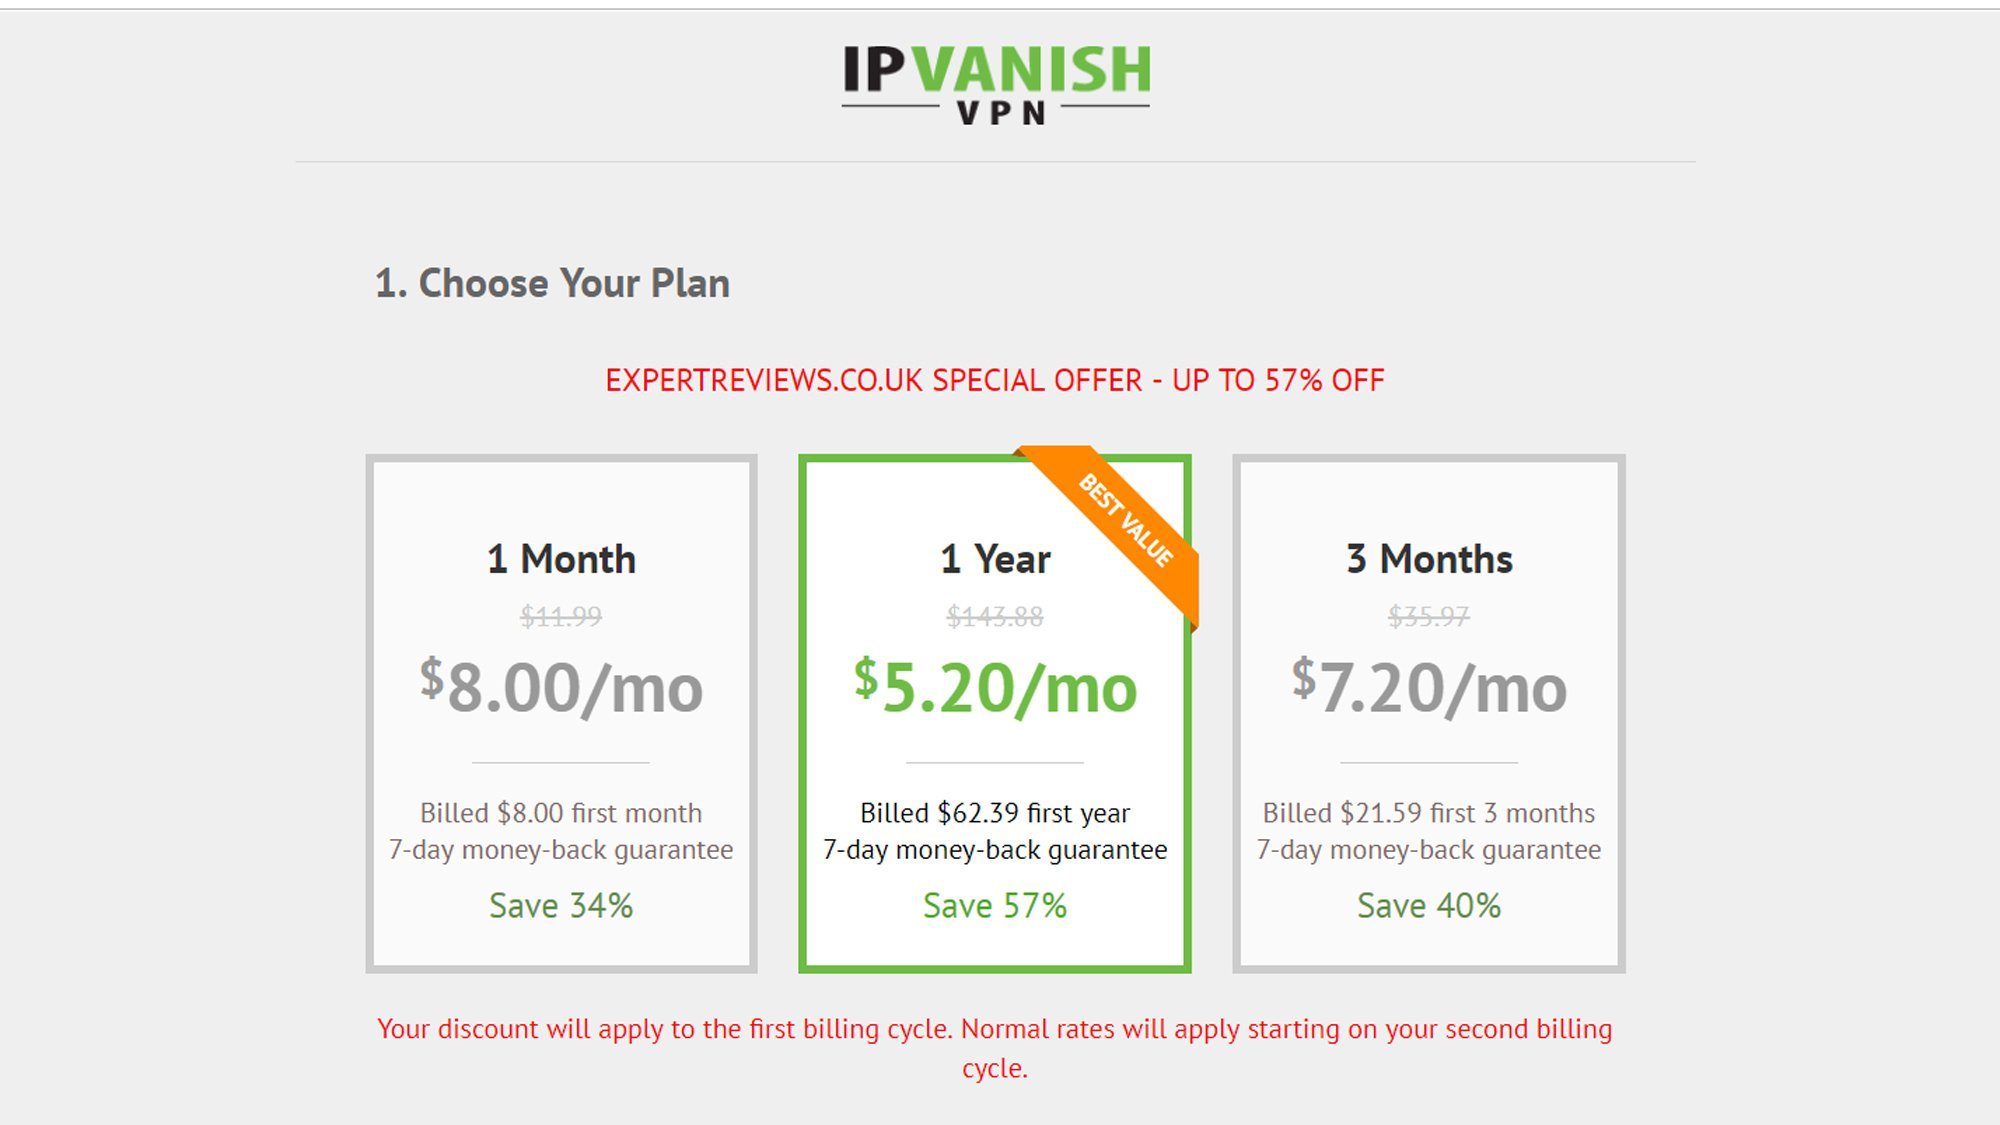 Online Promotional Code 20 Off Ip Vanish 2020